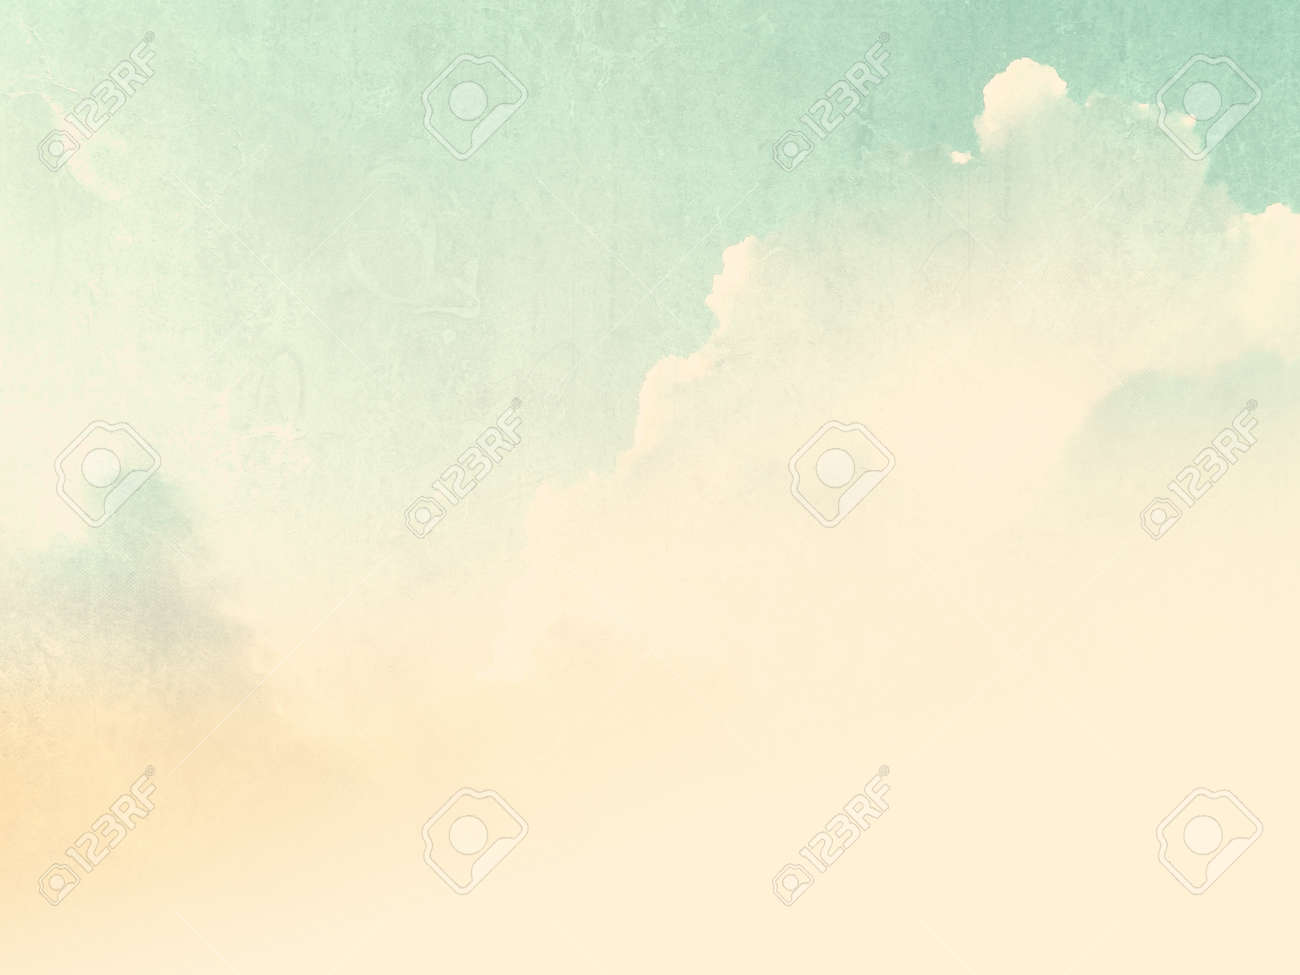 Vintage sky light beige green with soft pale watercolor texture - 53540874